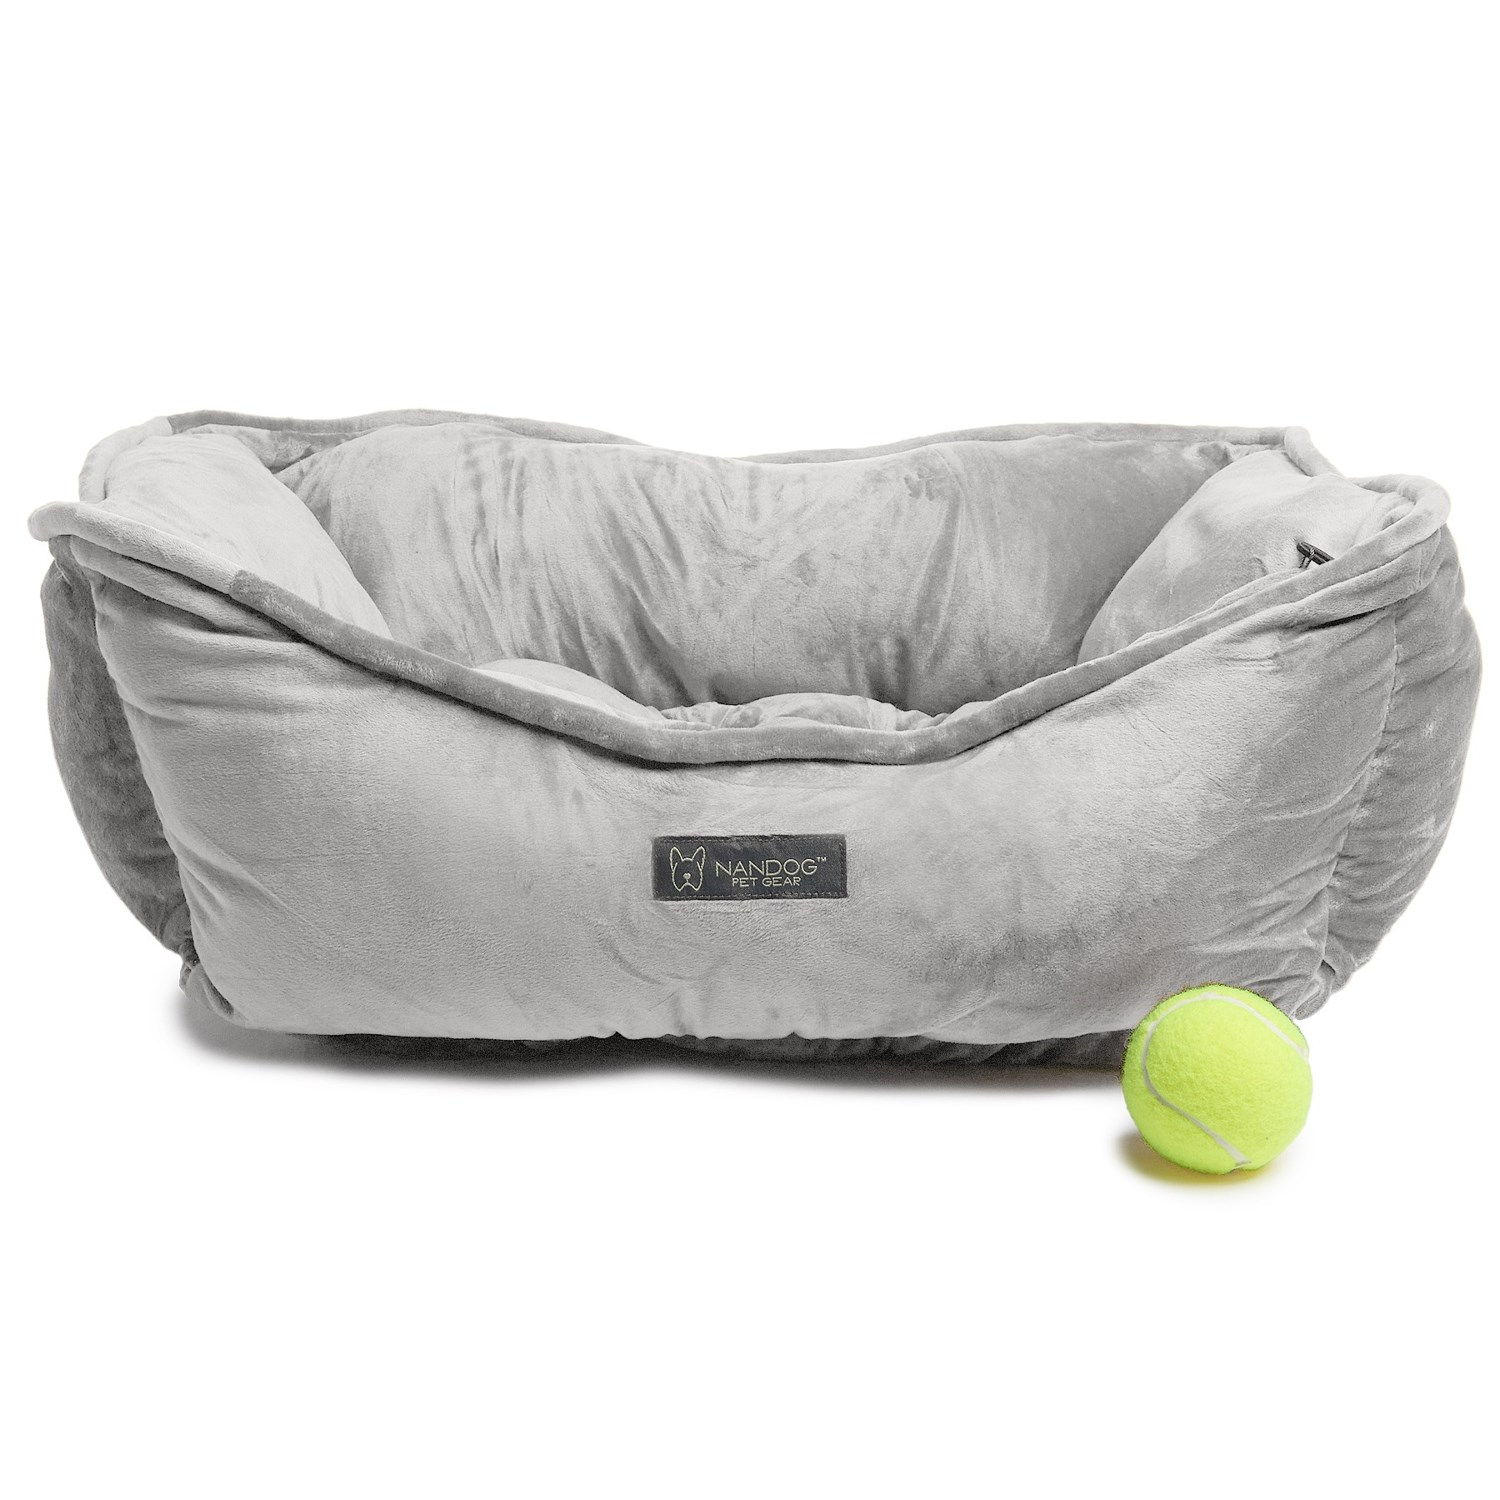 Nandog Pet Gear Dog Beds